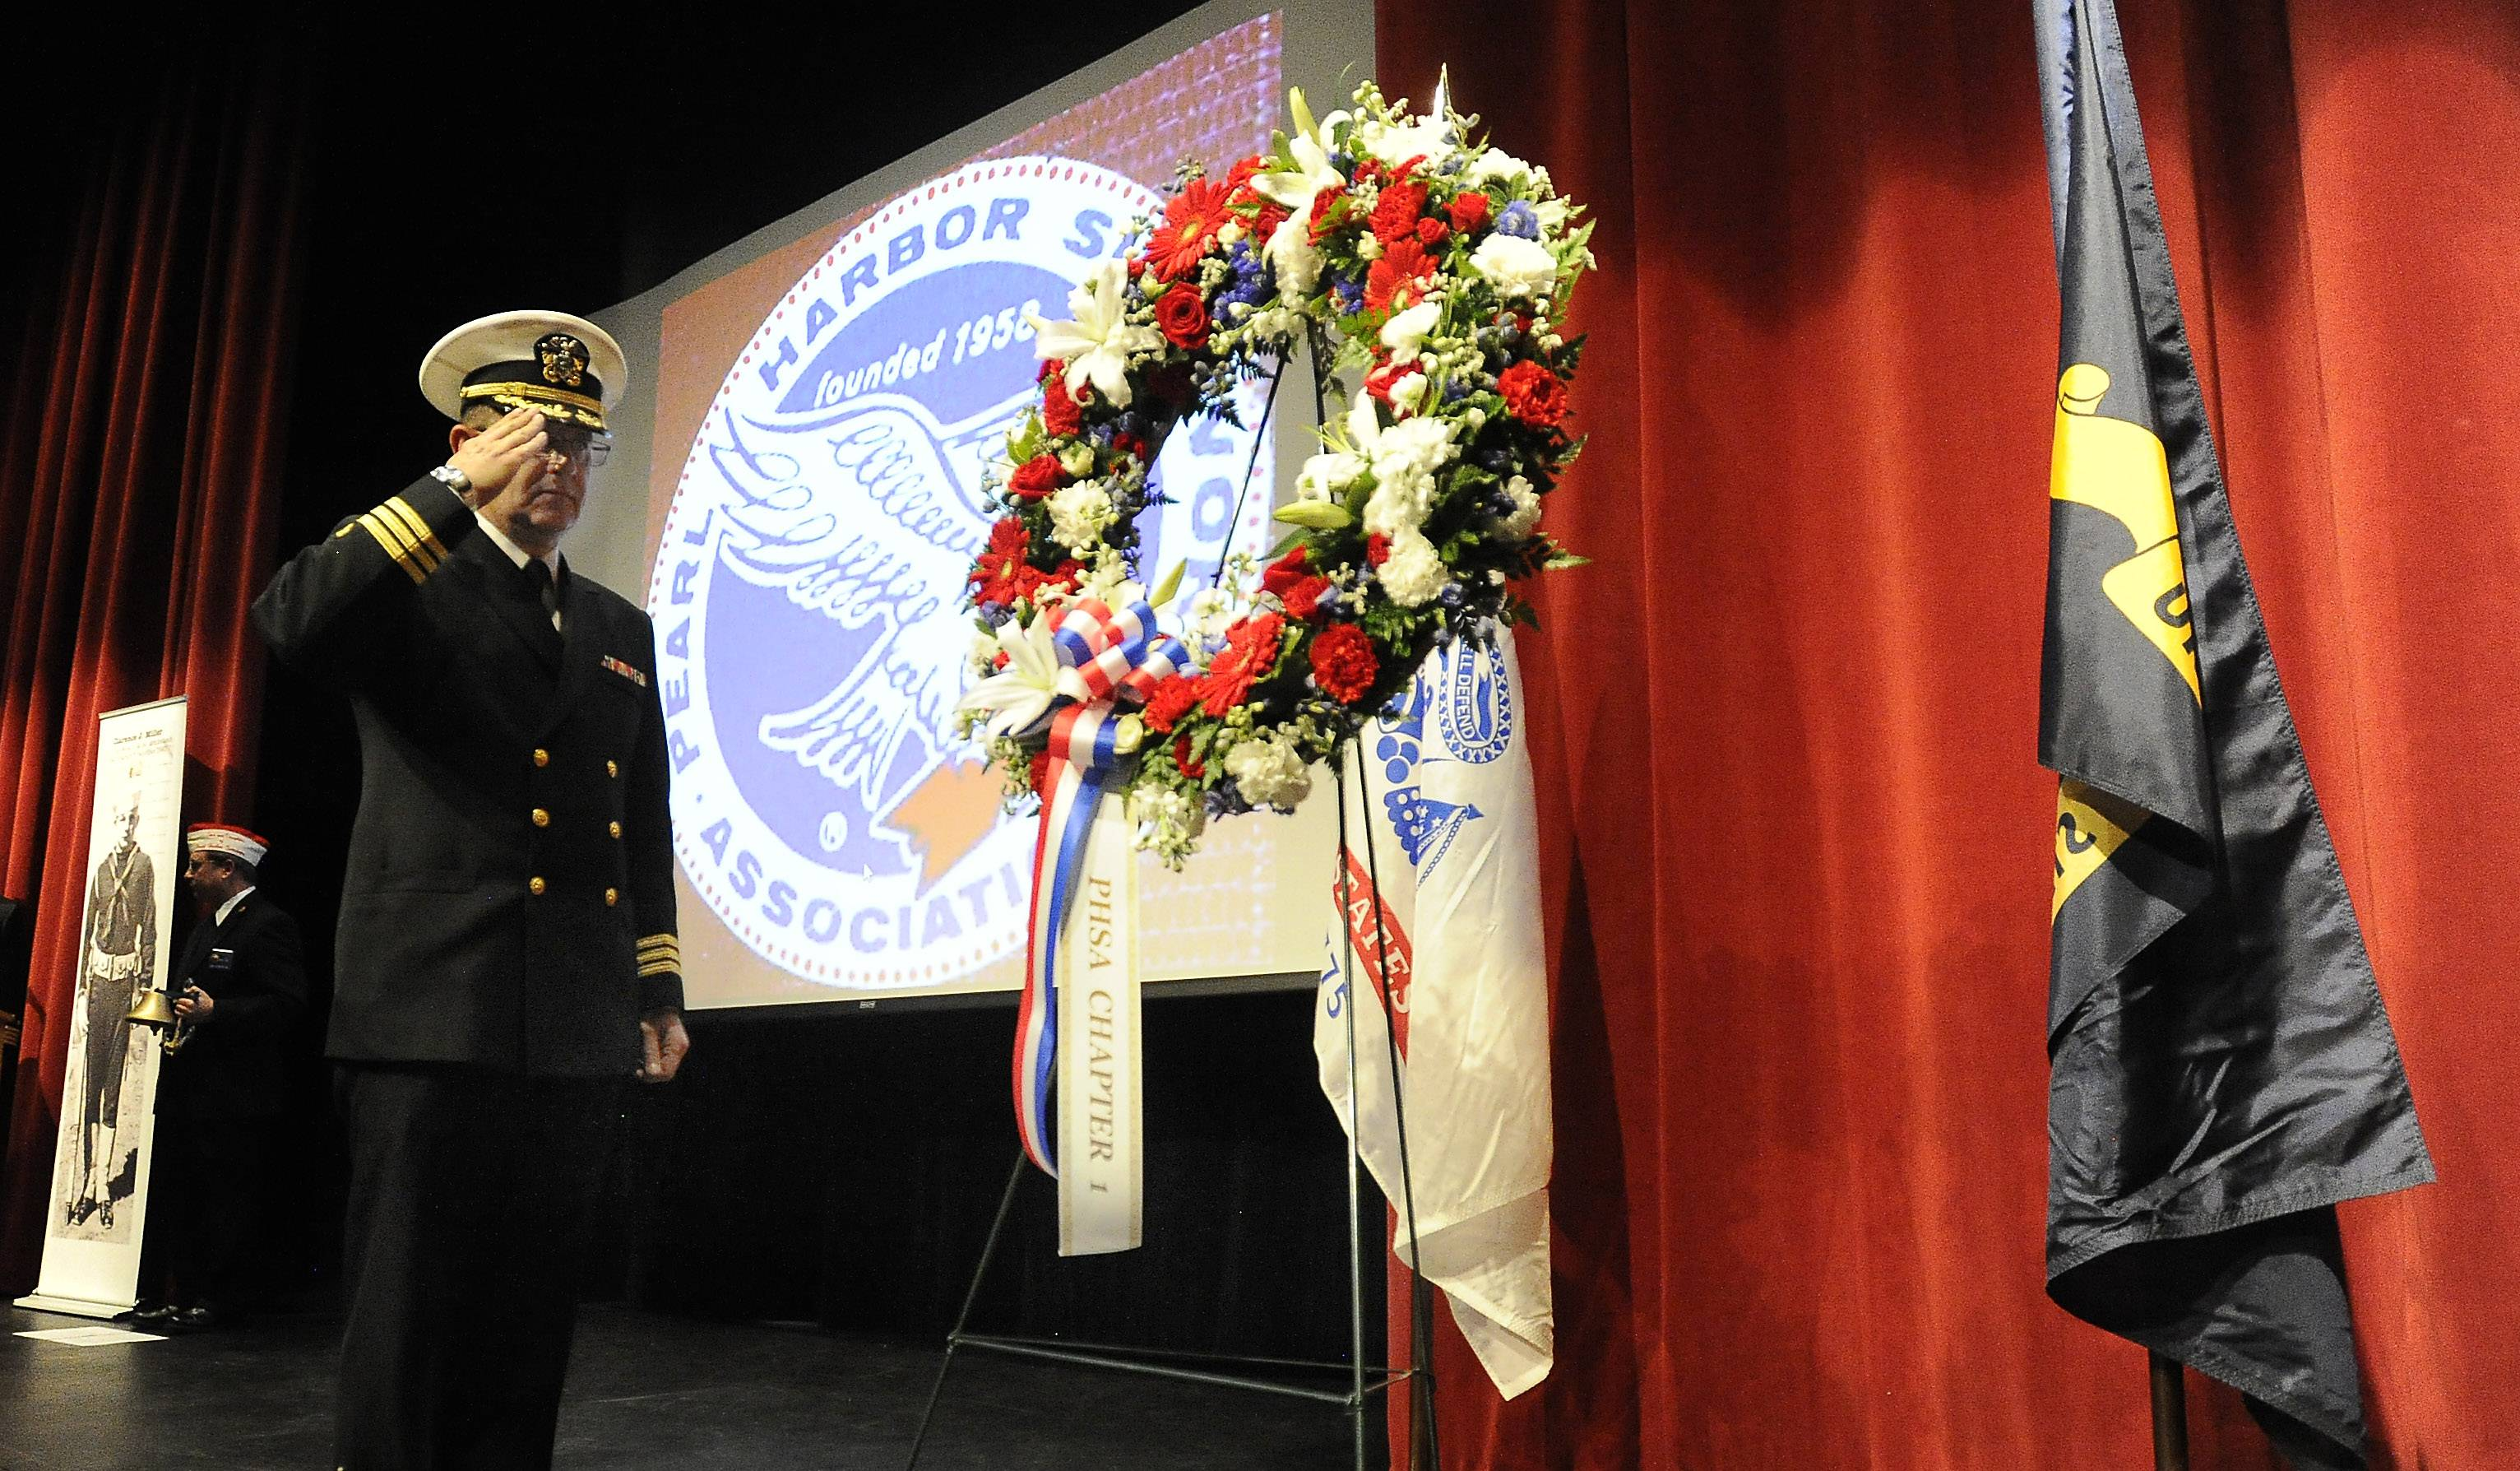 Commander Waldemar Kilian, a chaplain at Naval Station Great Lakes near North Chicago, salutes during a wreath presentation at a Pearl Harbor Remembrance Day ceremony Monday in Des Plaines.